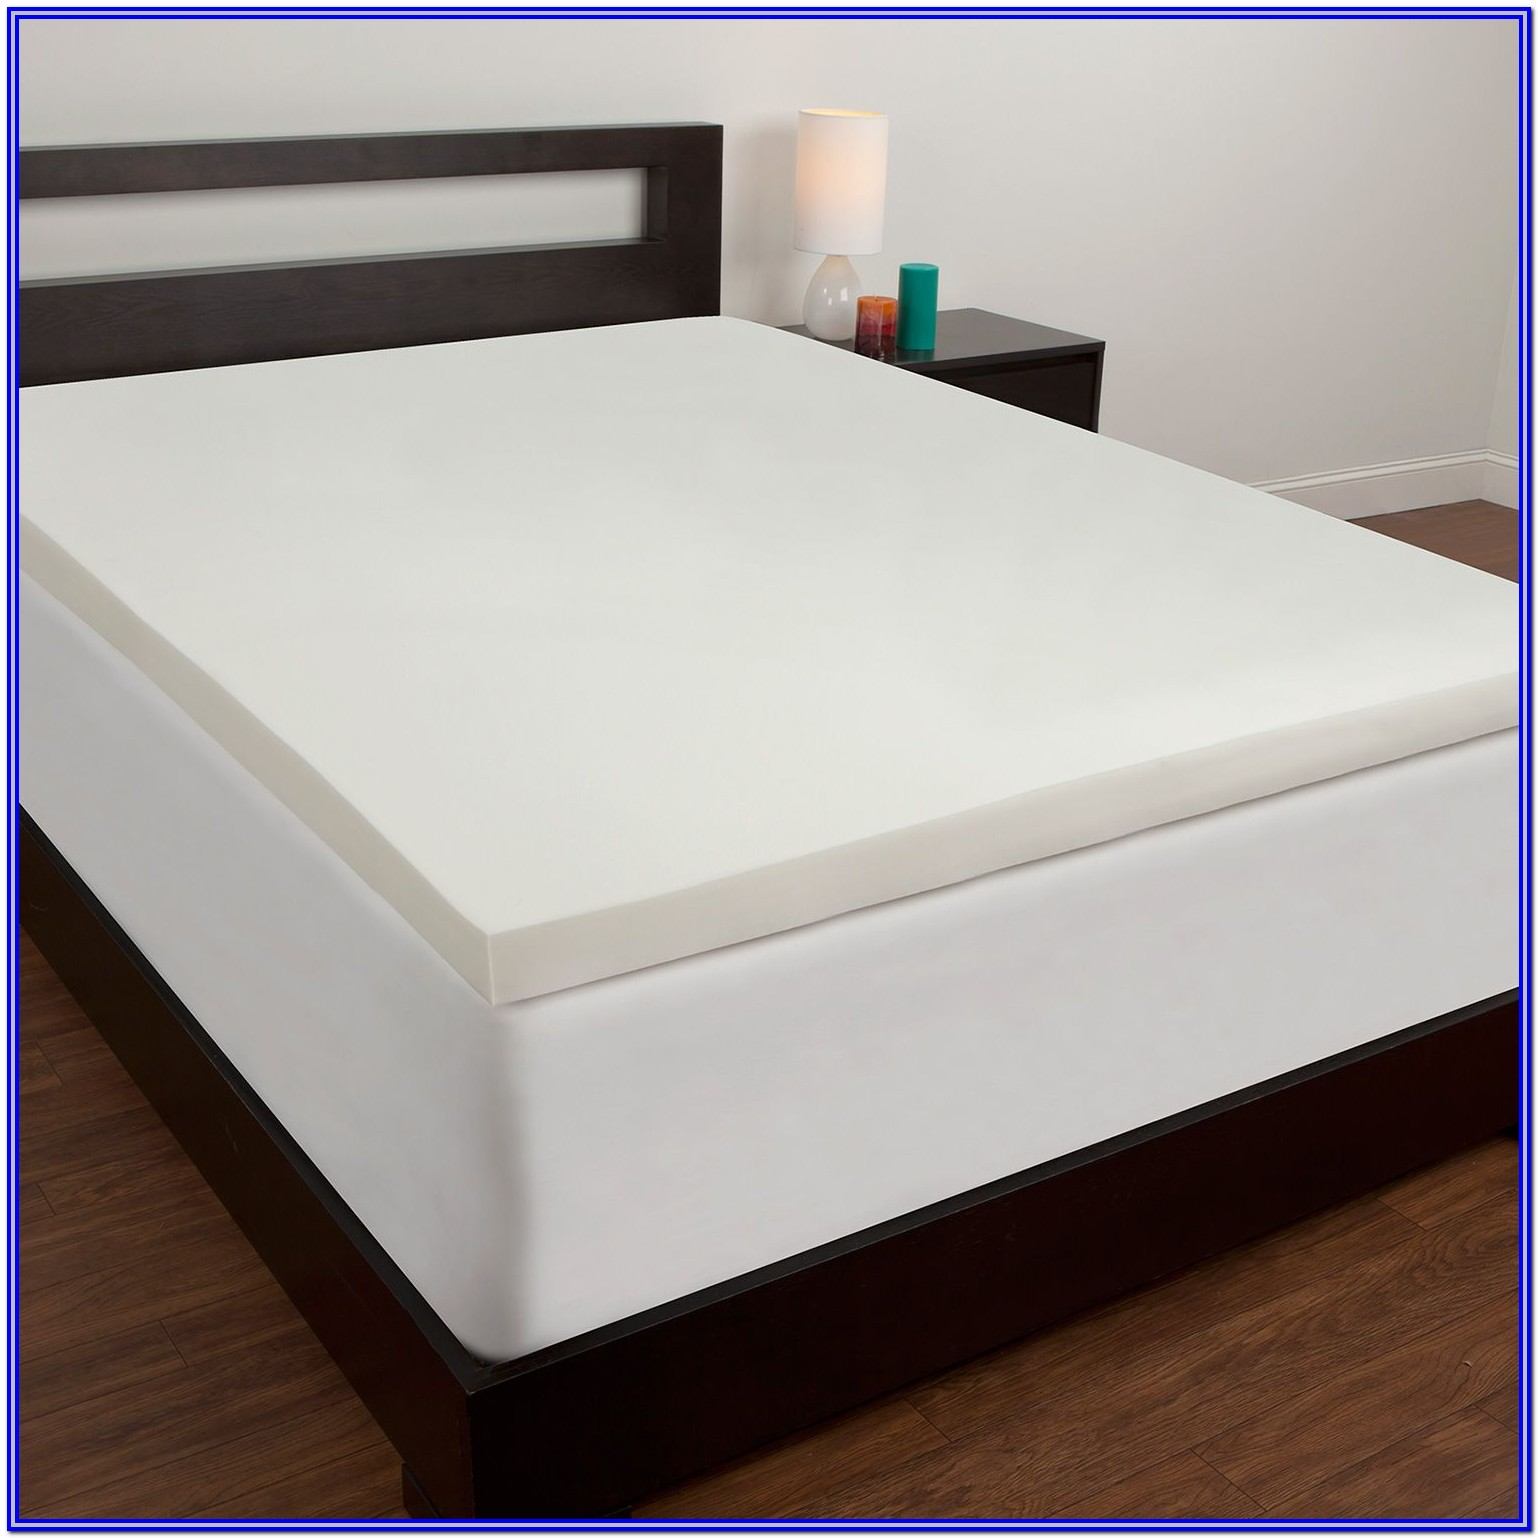 Chill Pad For Your Bed